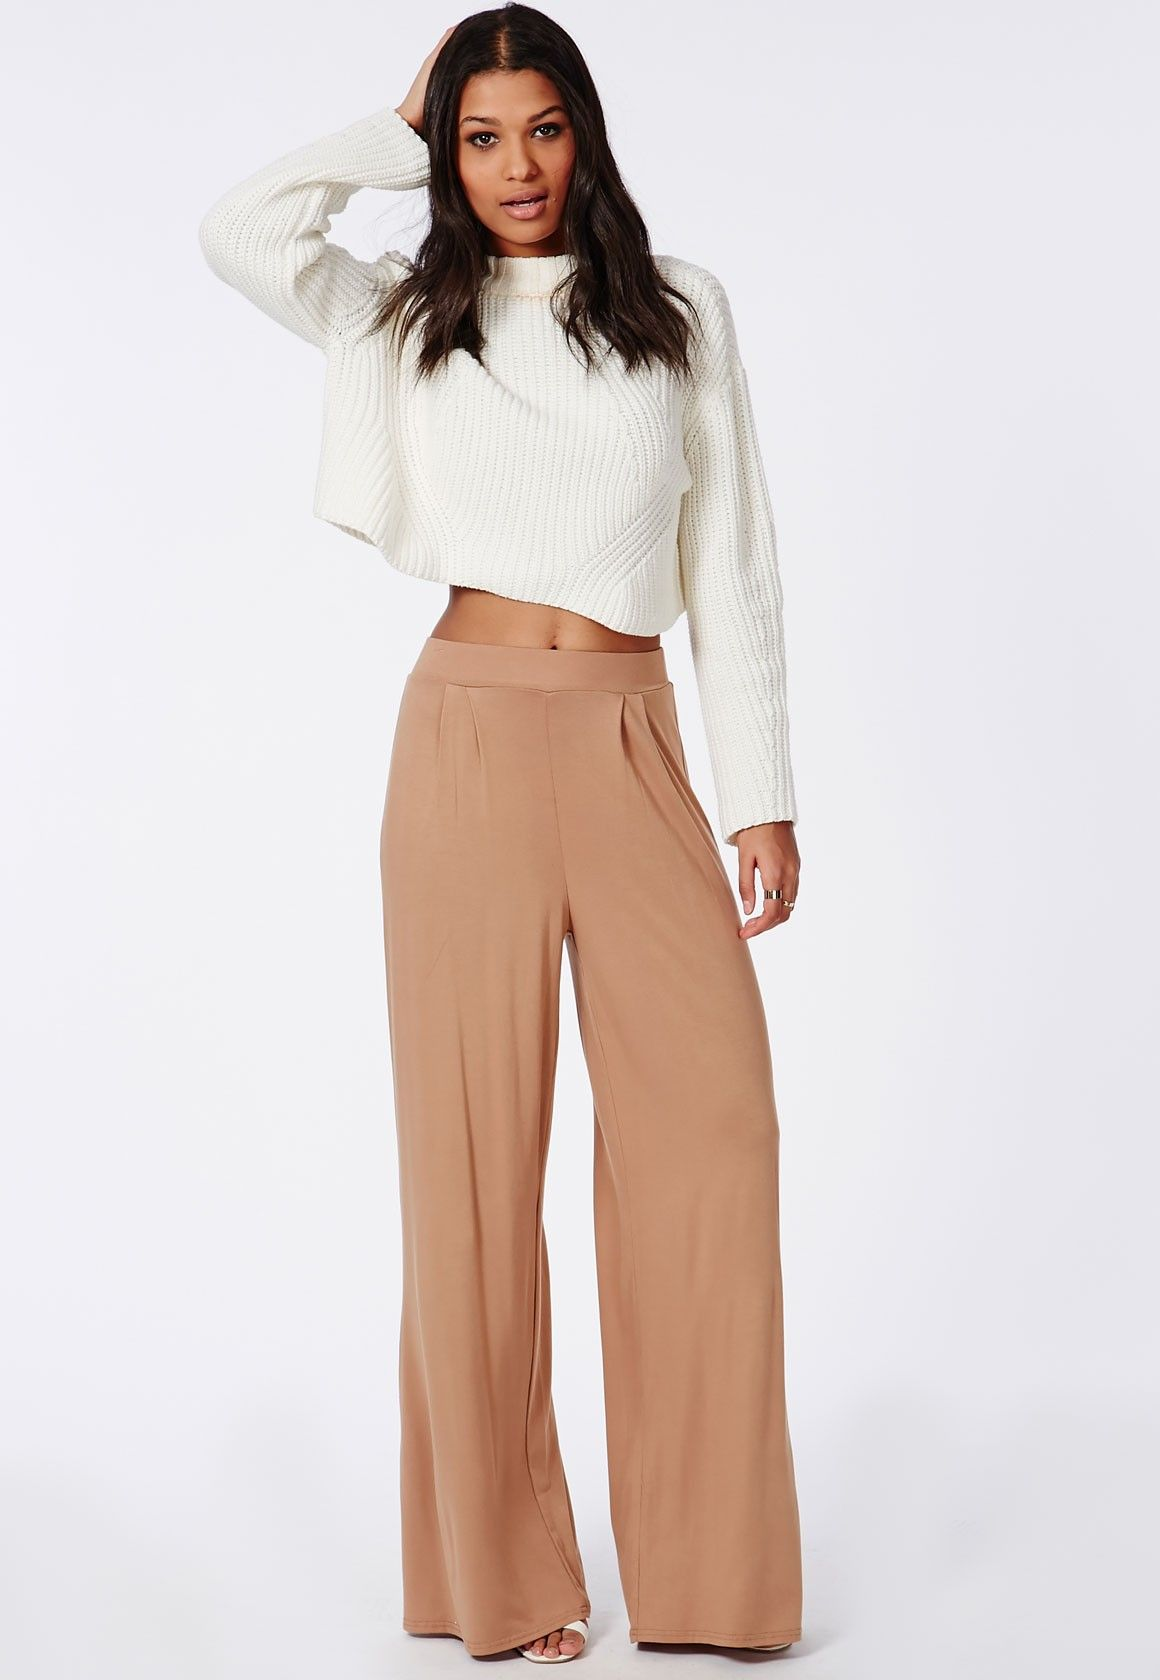 Missguided - Jersey Wide Leg Pants Camel | Chic & classic - Biz ...